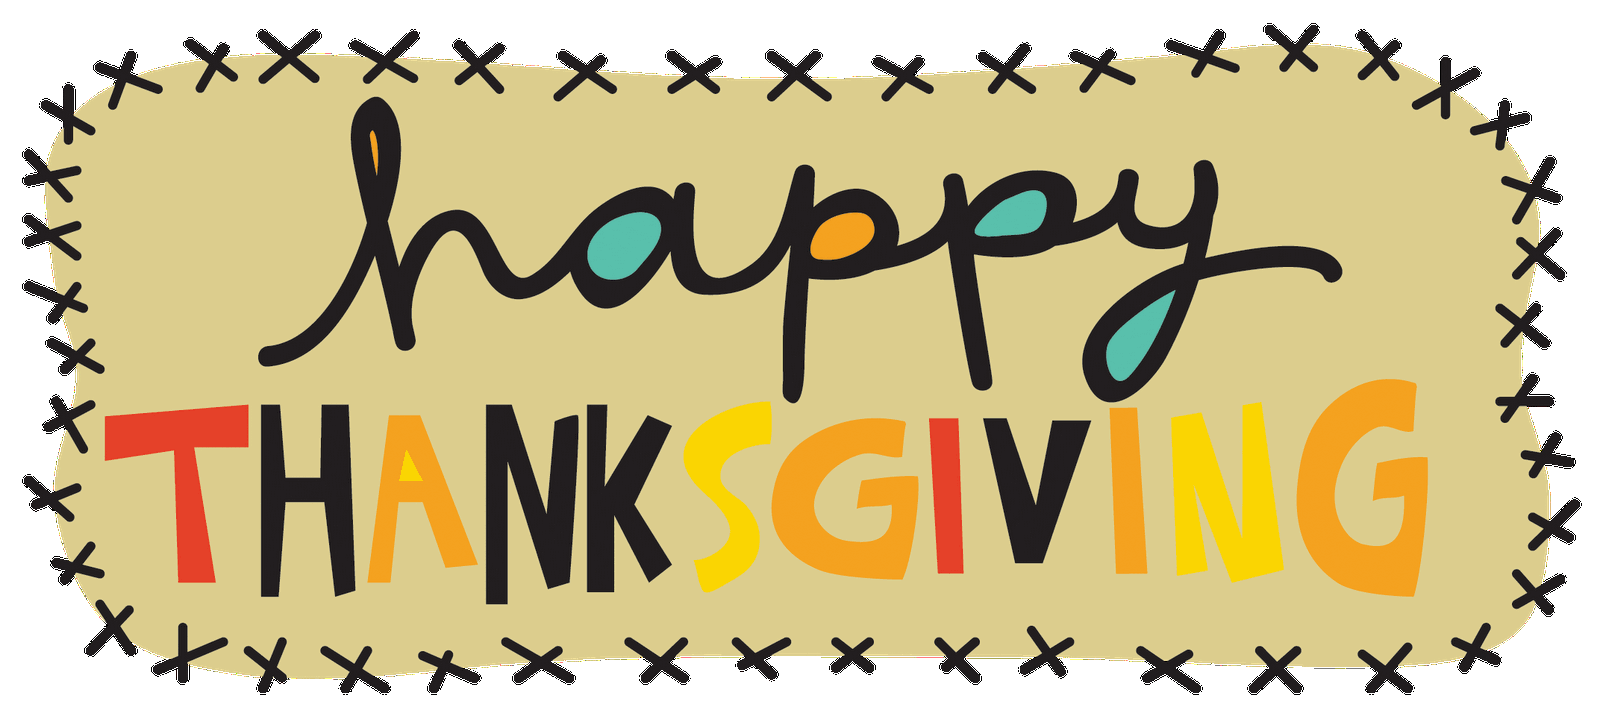 Thanksgiving volunteer clipart svg freeuse download Thanksgiving Clipart For Kids at GetDrawings.com | Free for personal ... svg freeuse download